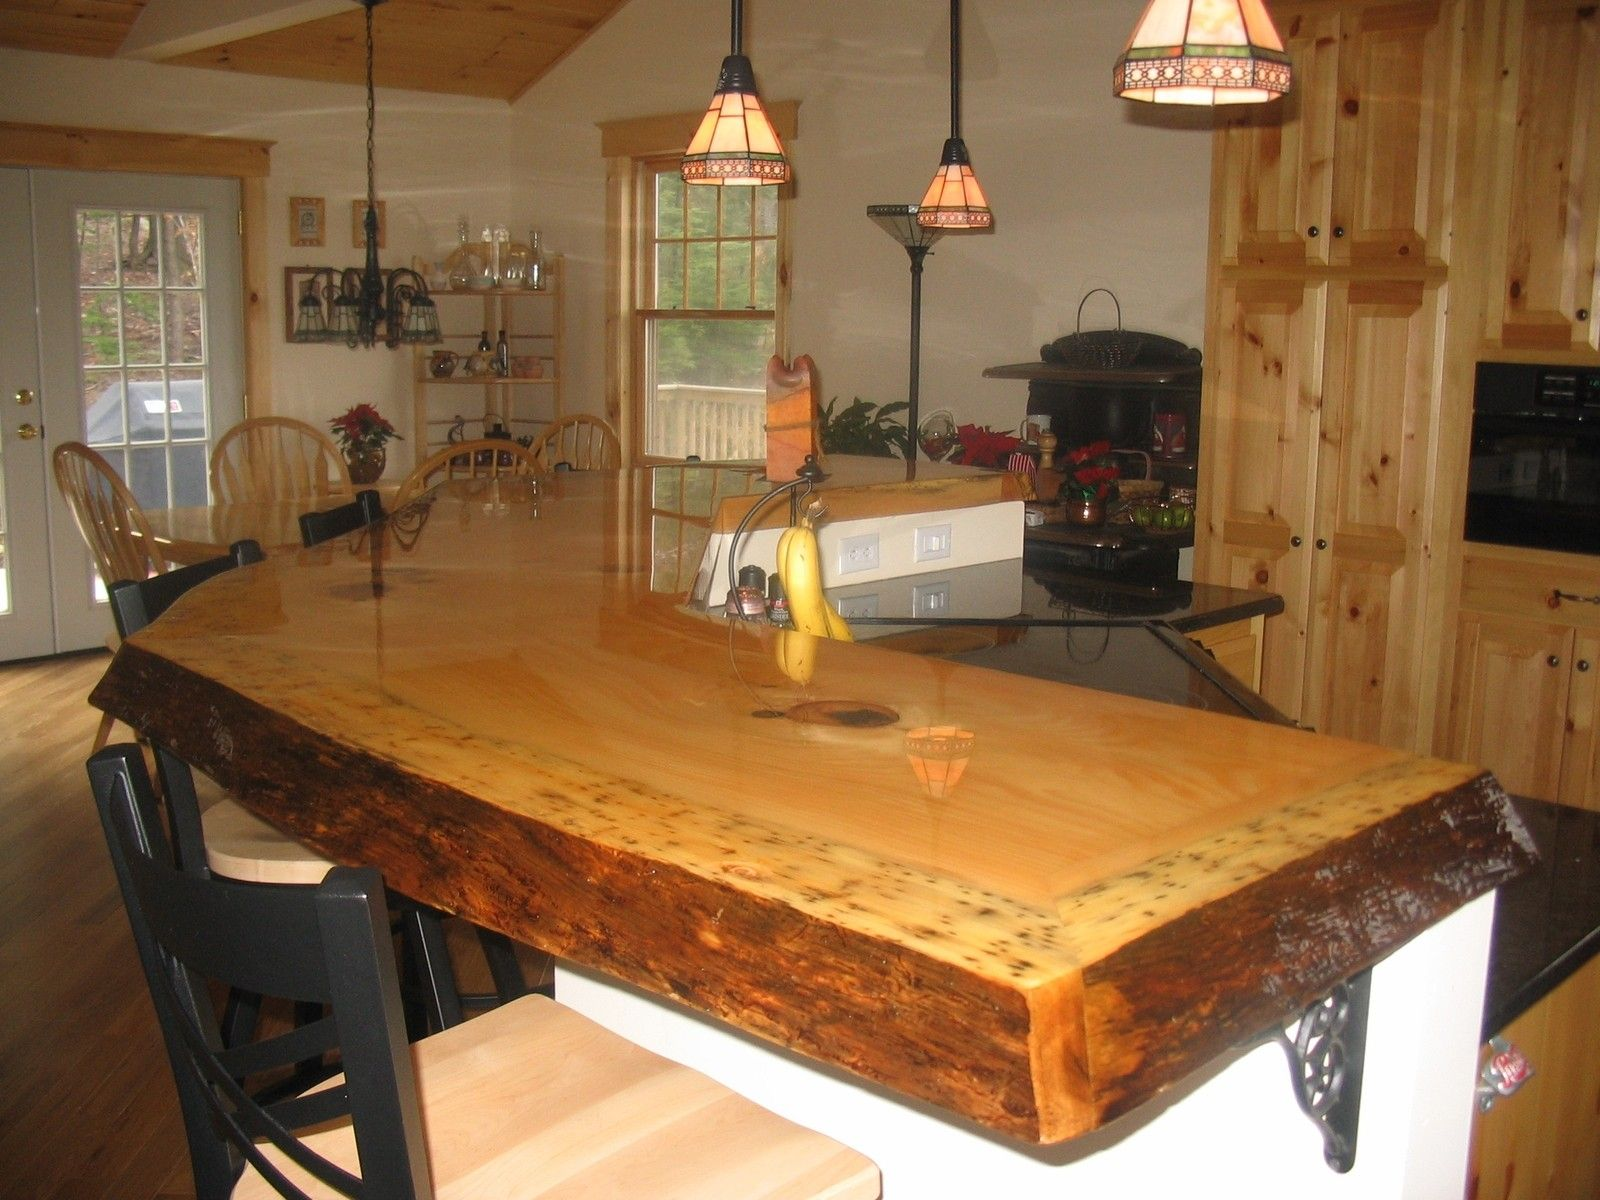 Wood Countertops, Pool Table, Basement Ideas, Granite, Marbles, Wood  Counter Stools, Bumper Pool Table, Wooden Countertops, Billard Table